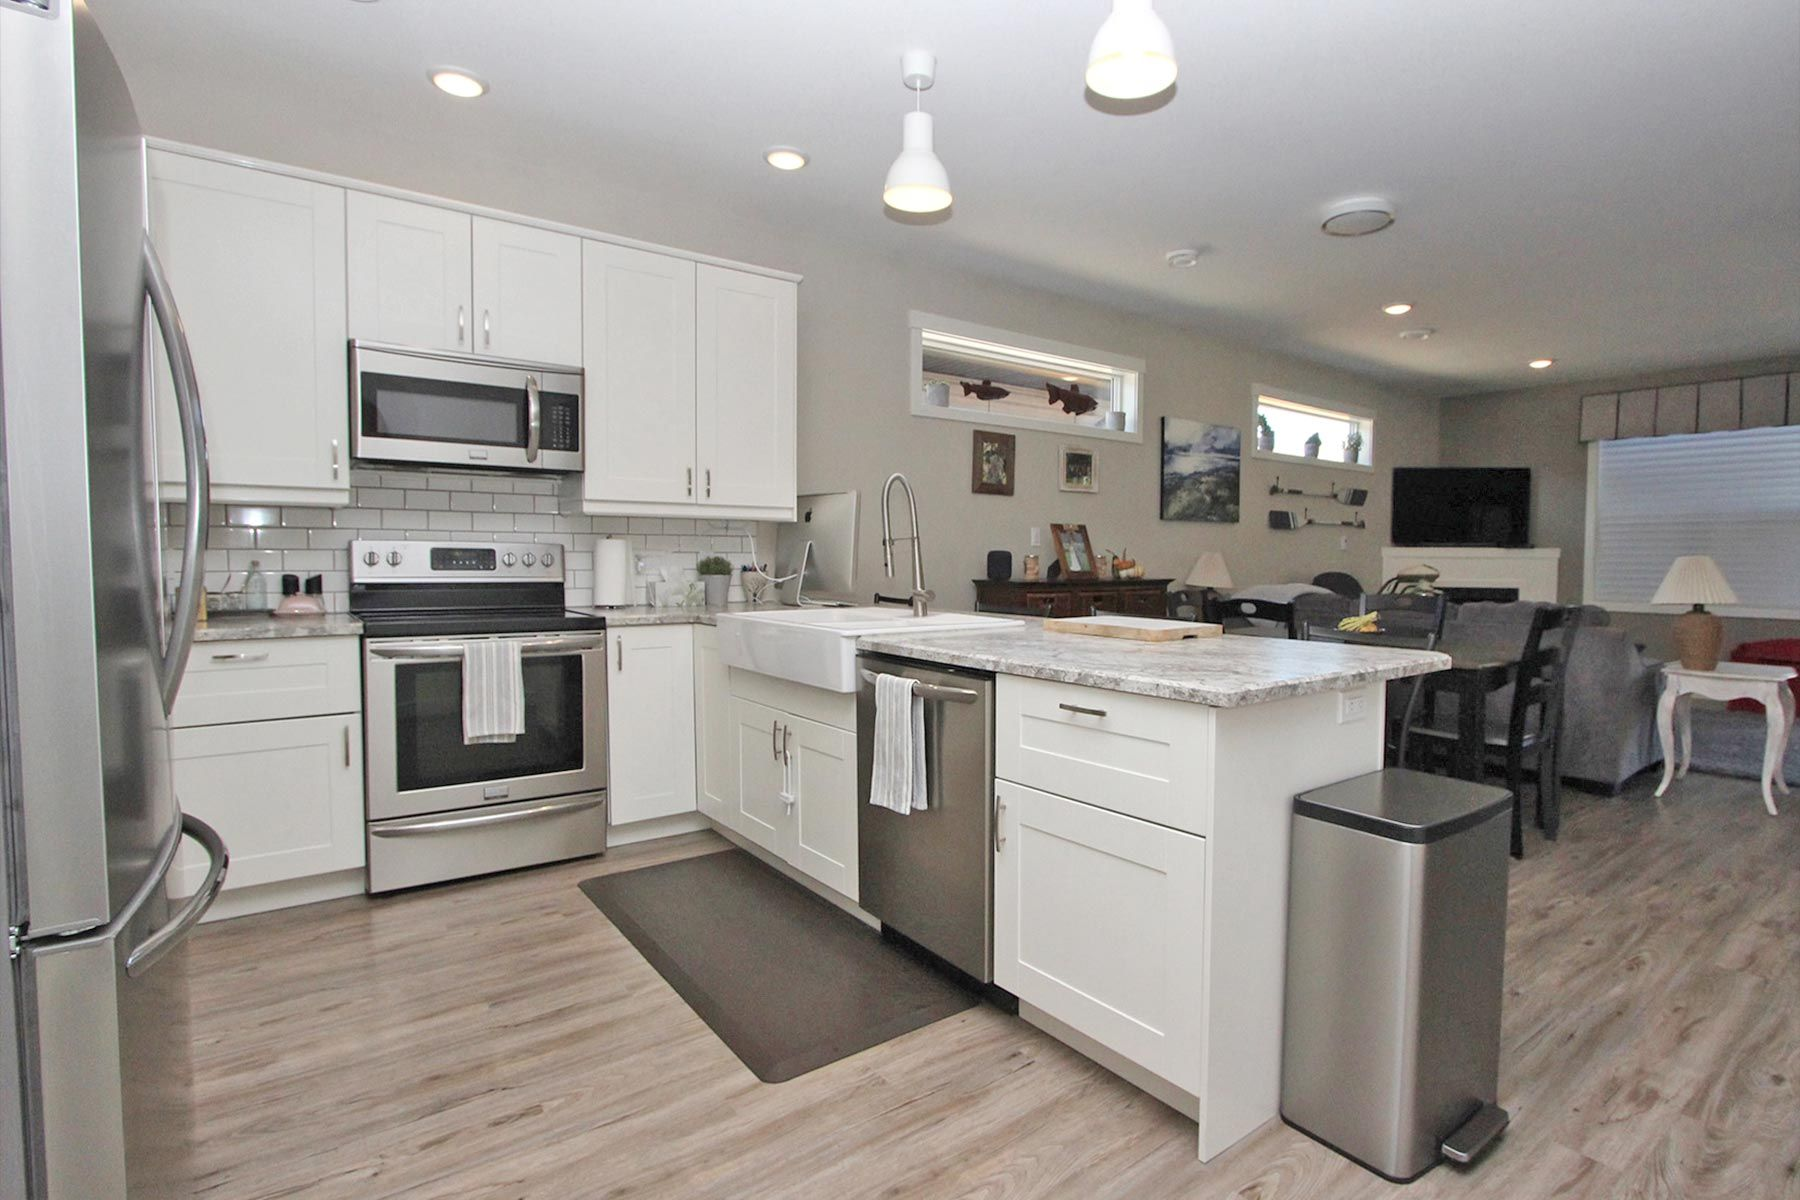 Photo 21: Photos: 199 Ash Drive in Chase: House for sale : MLS®# 10223046